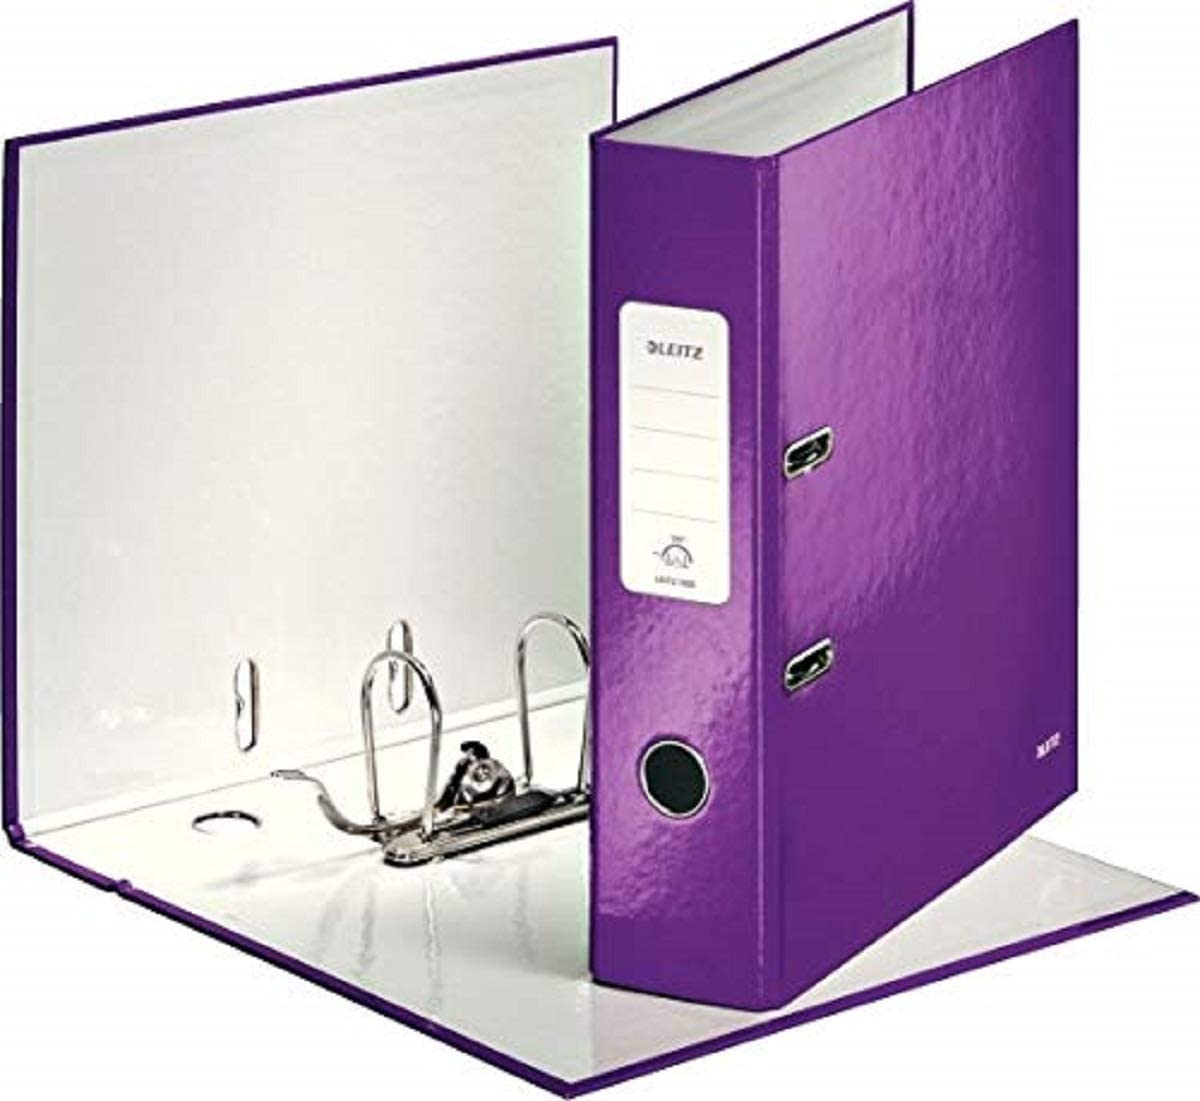 Leitz 10050062 A4 80 mm Wow Los Soldering Angeles Mall Files - Purple Lever 180 Arch